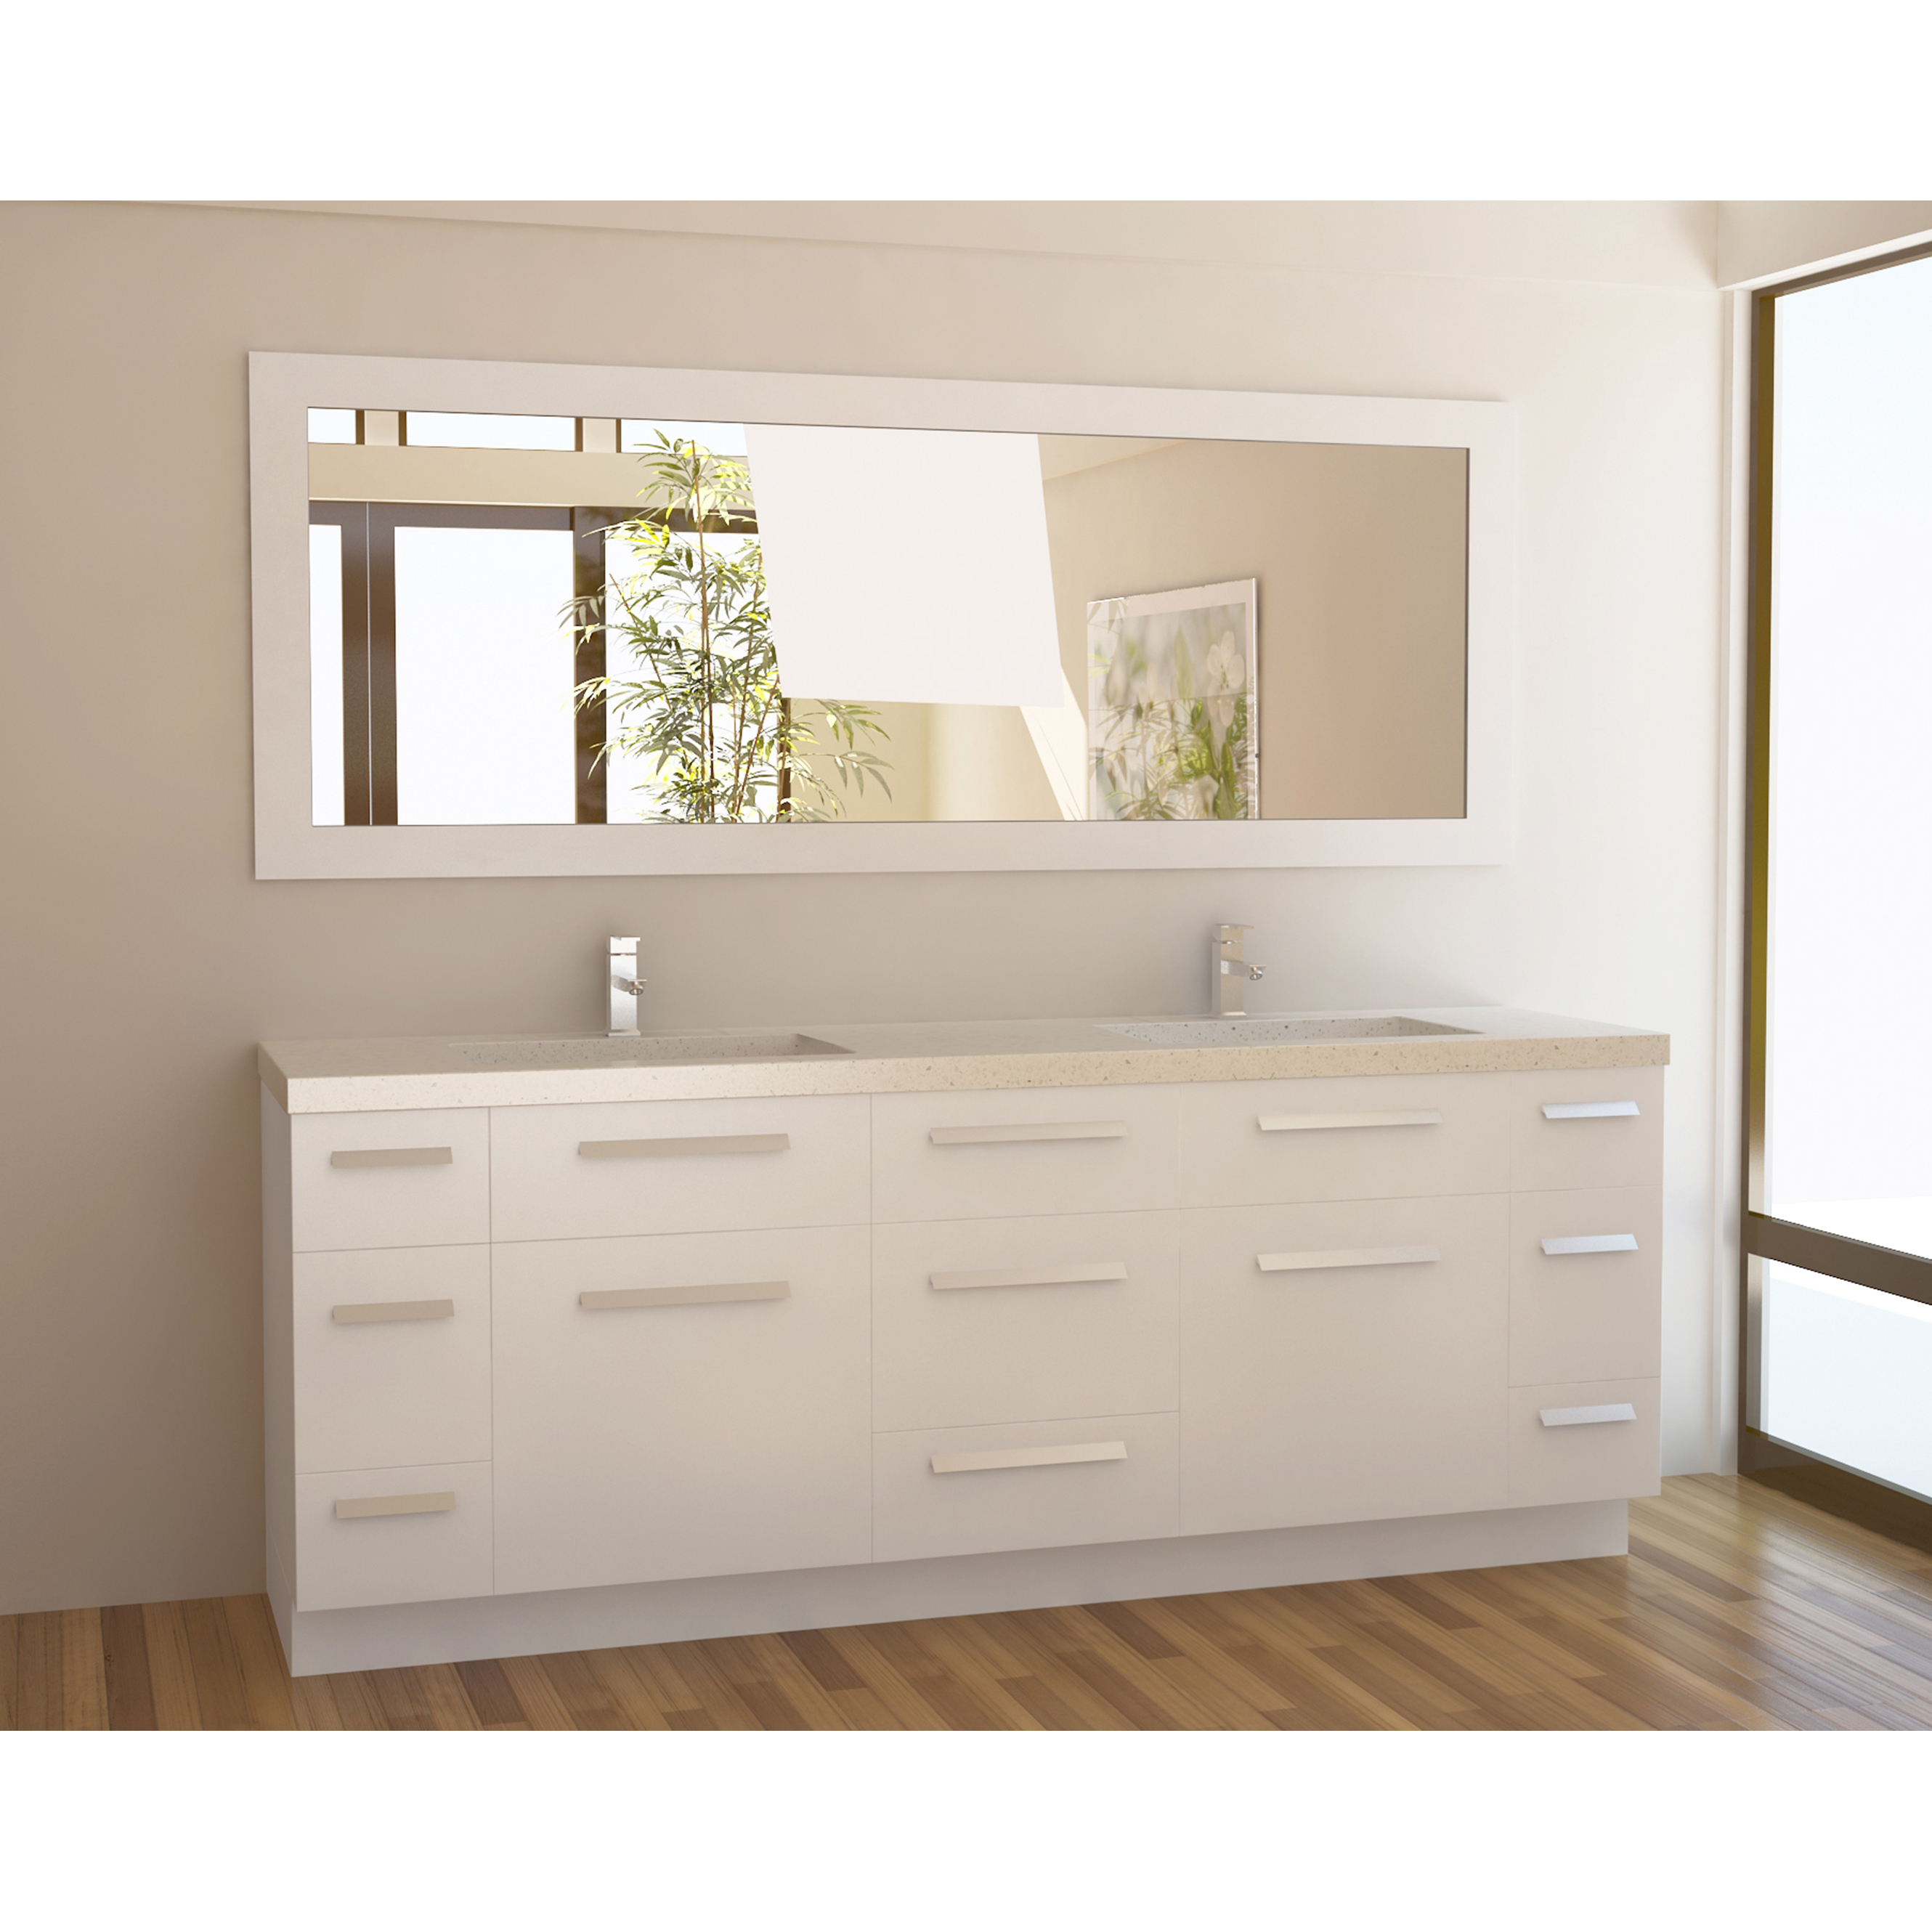 84 inch bathroom vanity the variants homesfeed for Restroom vanity